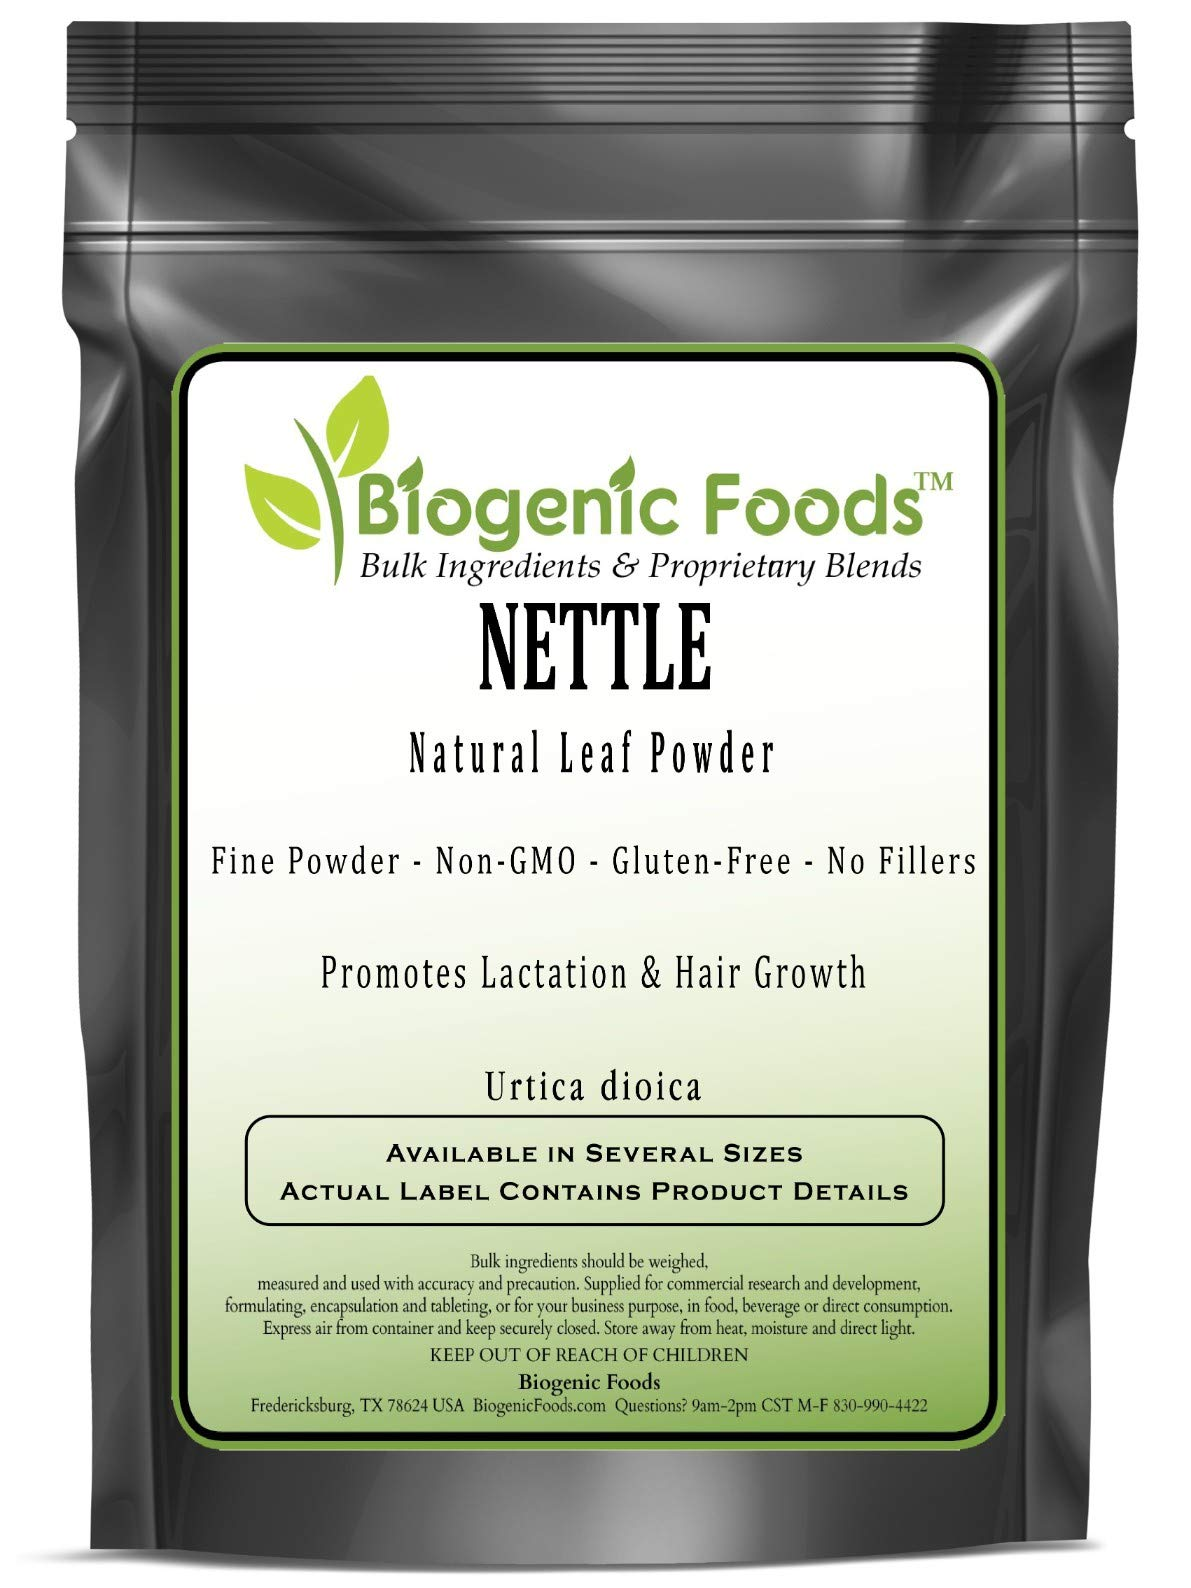 Nettle - Natural Leaf Fine Powder (Urtica dioica), 5 kg by Biogenic Foods (Image #1)